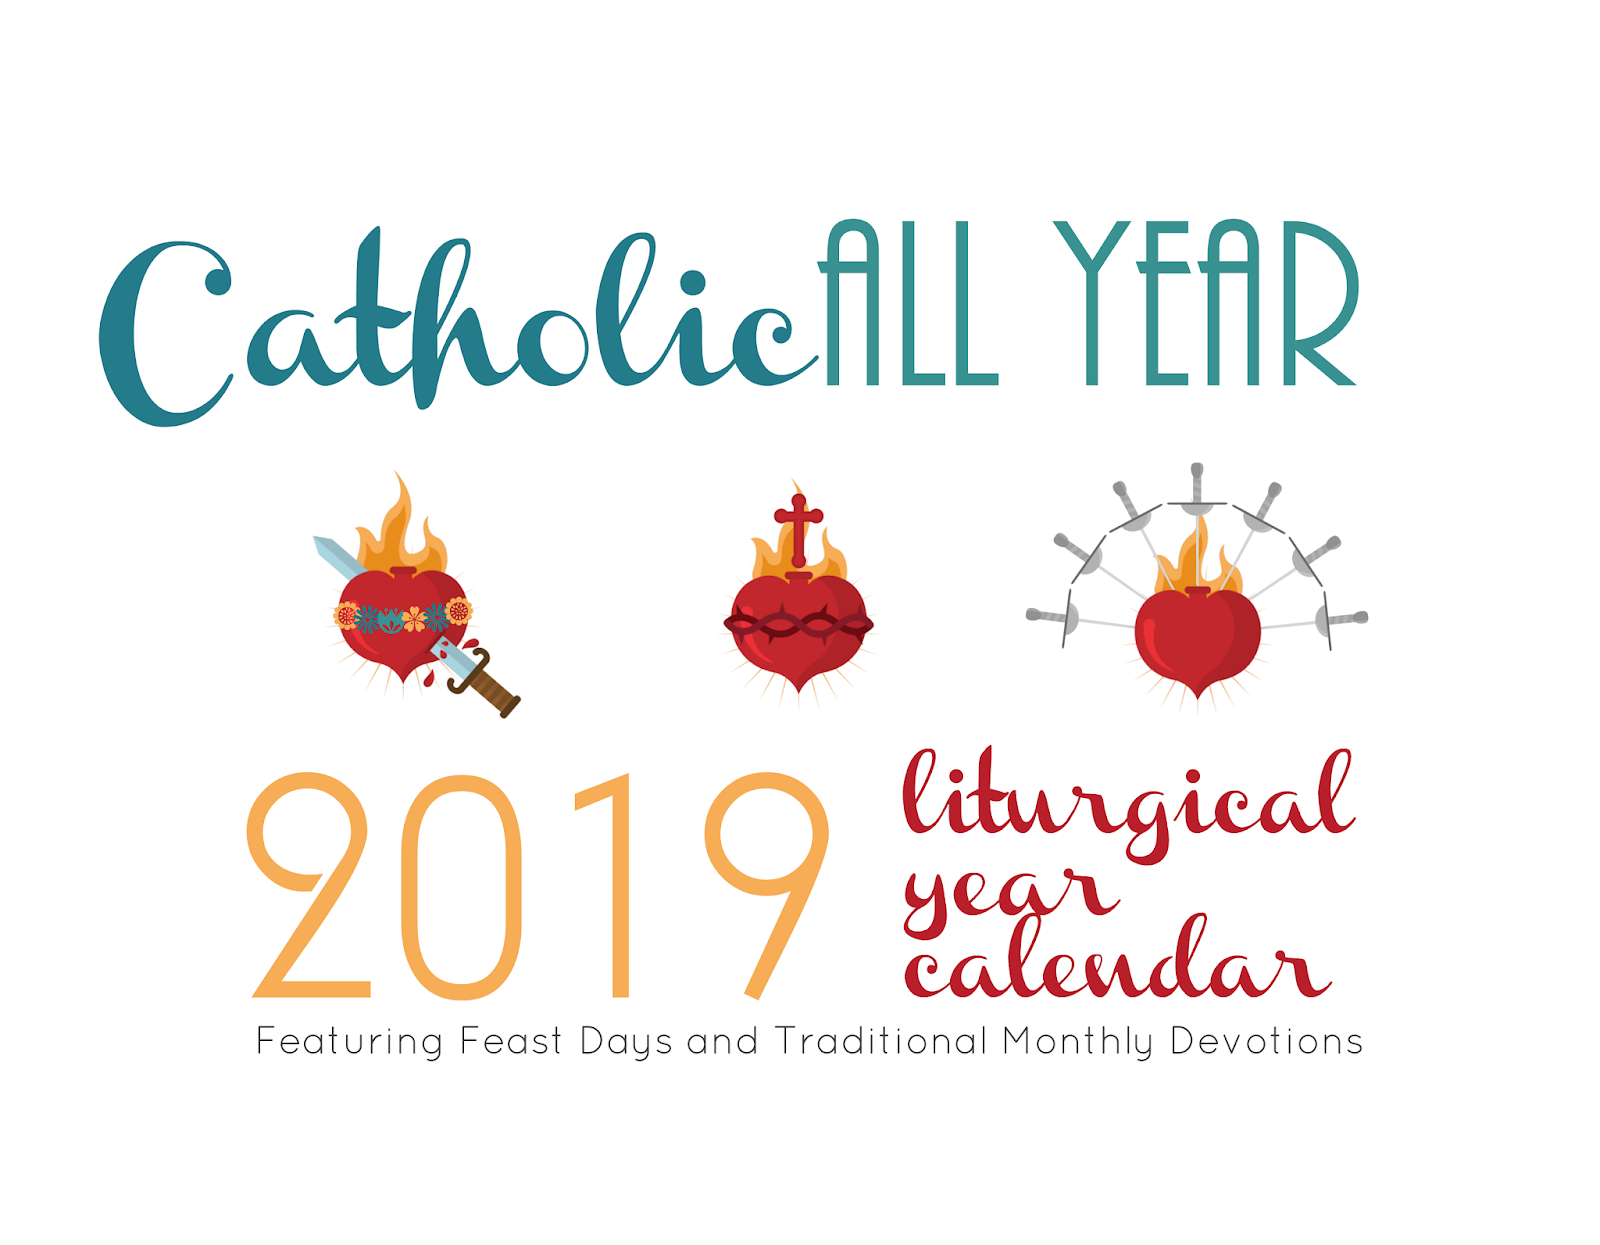 and my 2019 liturgical year wall calendars are now available in two designs you can order them here